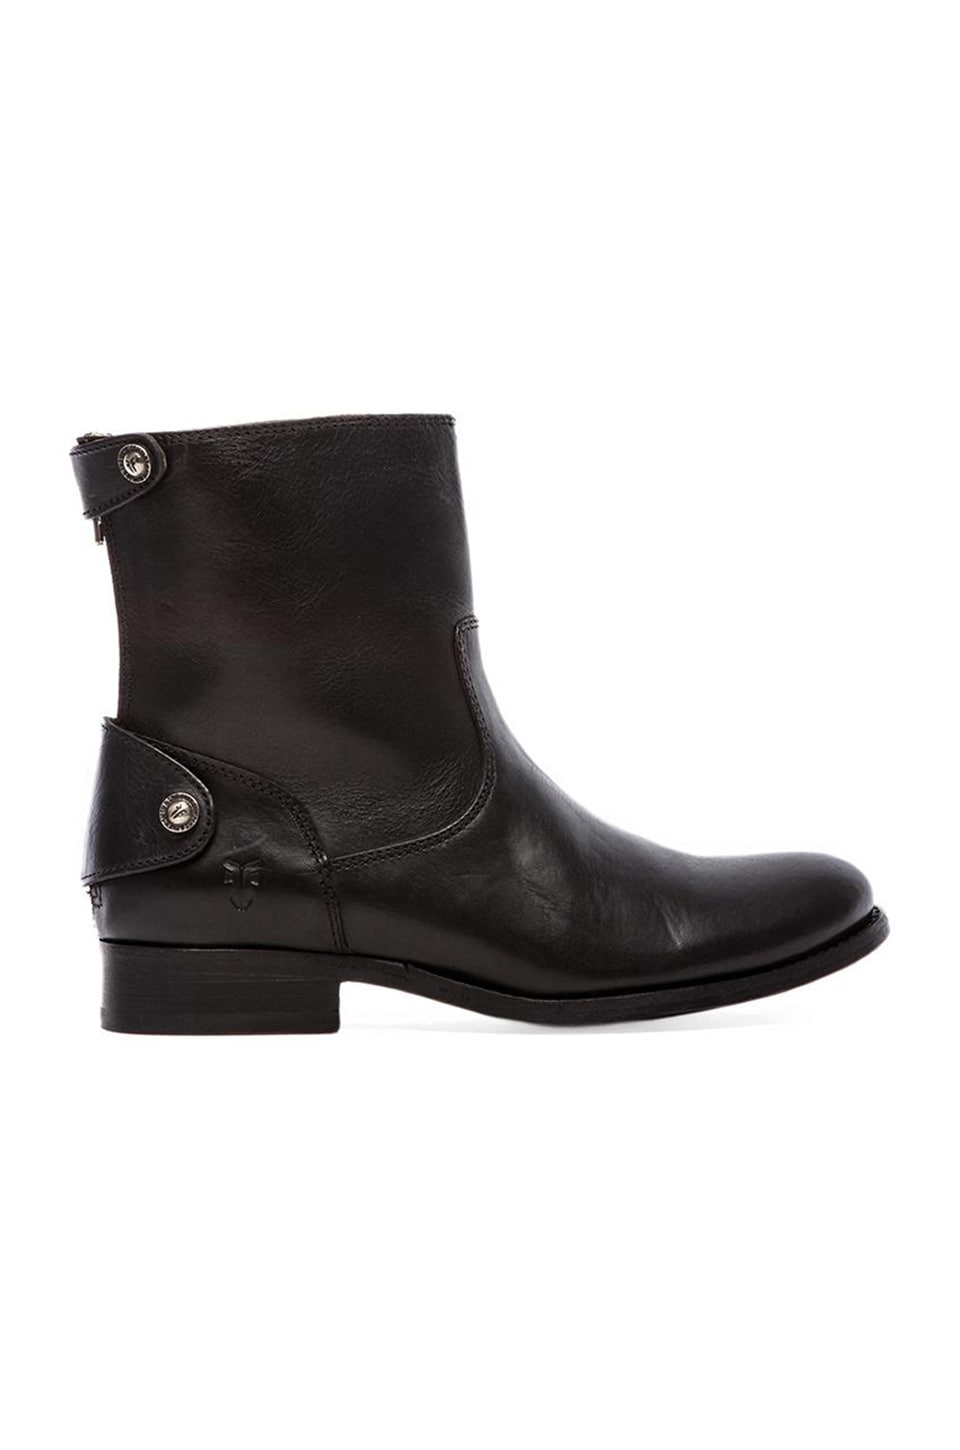 Frye Melissa Button Zip Short Boot in Black